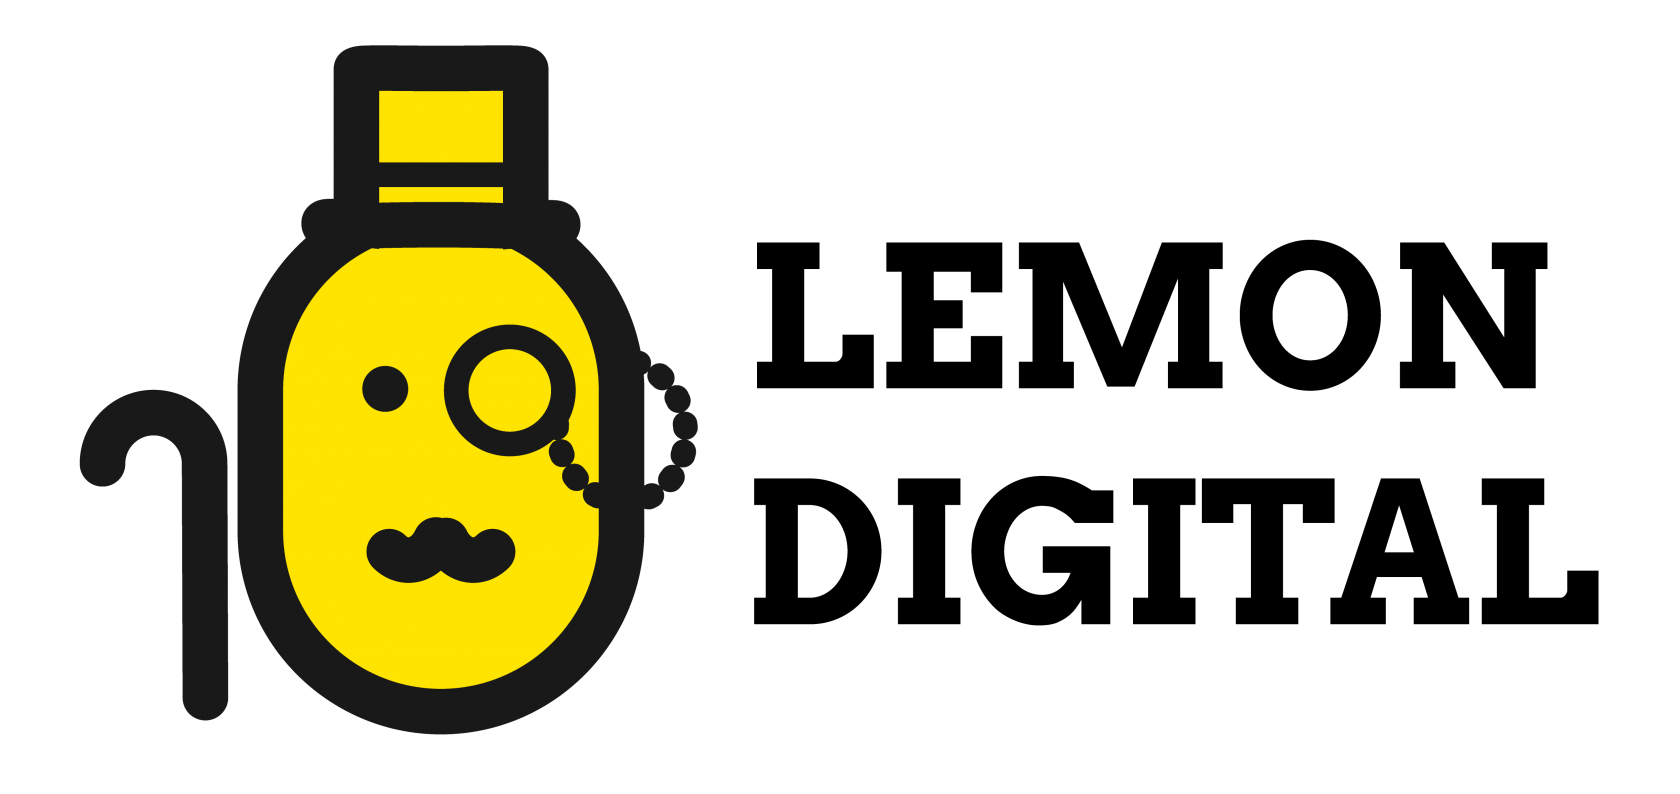 Lemon Digital Creative agency Lemon Digital is a world class creative design agency who have collaborated with top 50 ventures